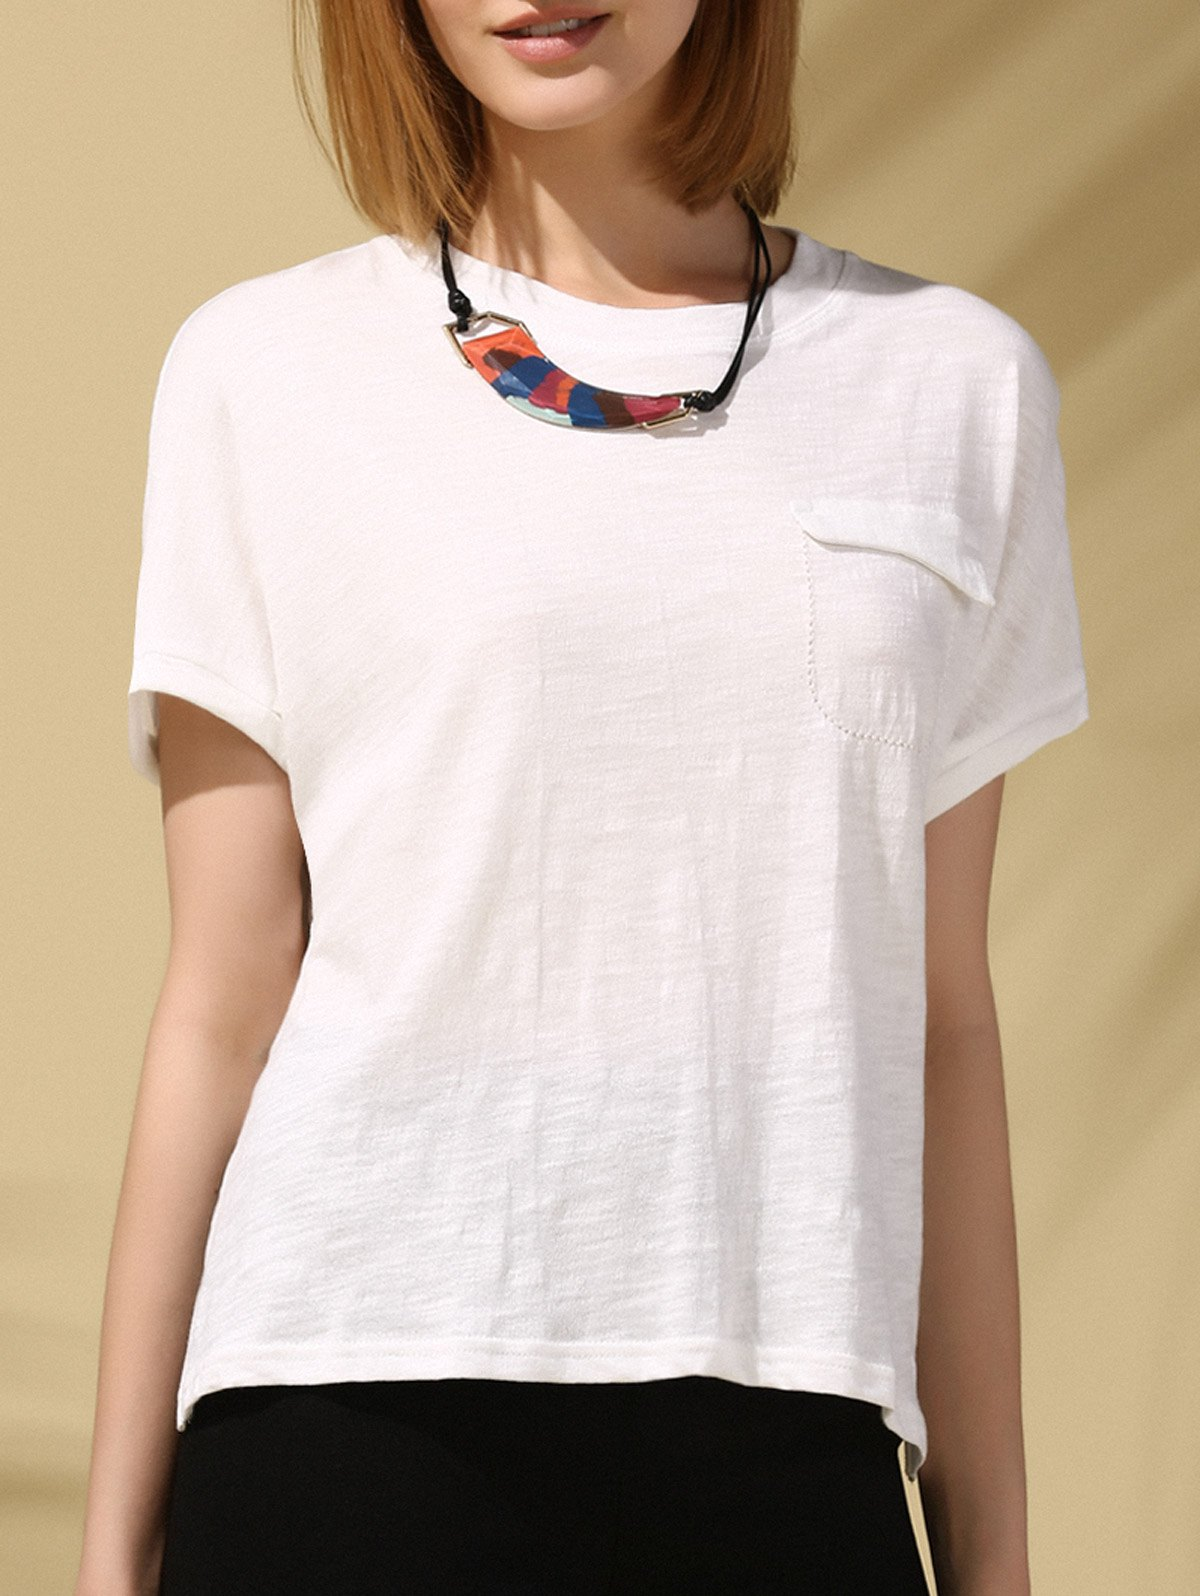 Casual Women's Jewel Neck Pocket Design Short Sleeves Slit Tee - WHITE ONE SIZE(FIT SIZE XS TO M)